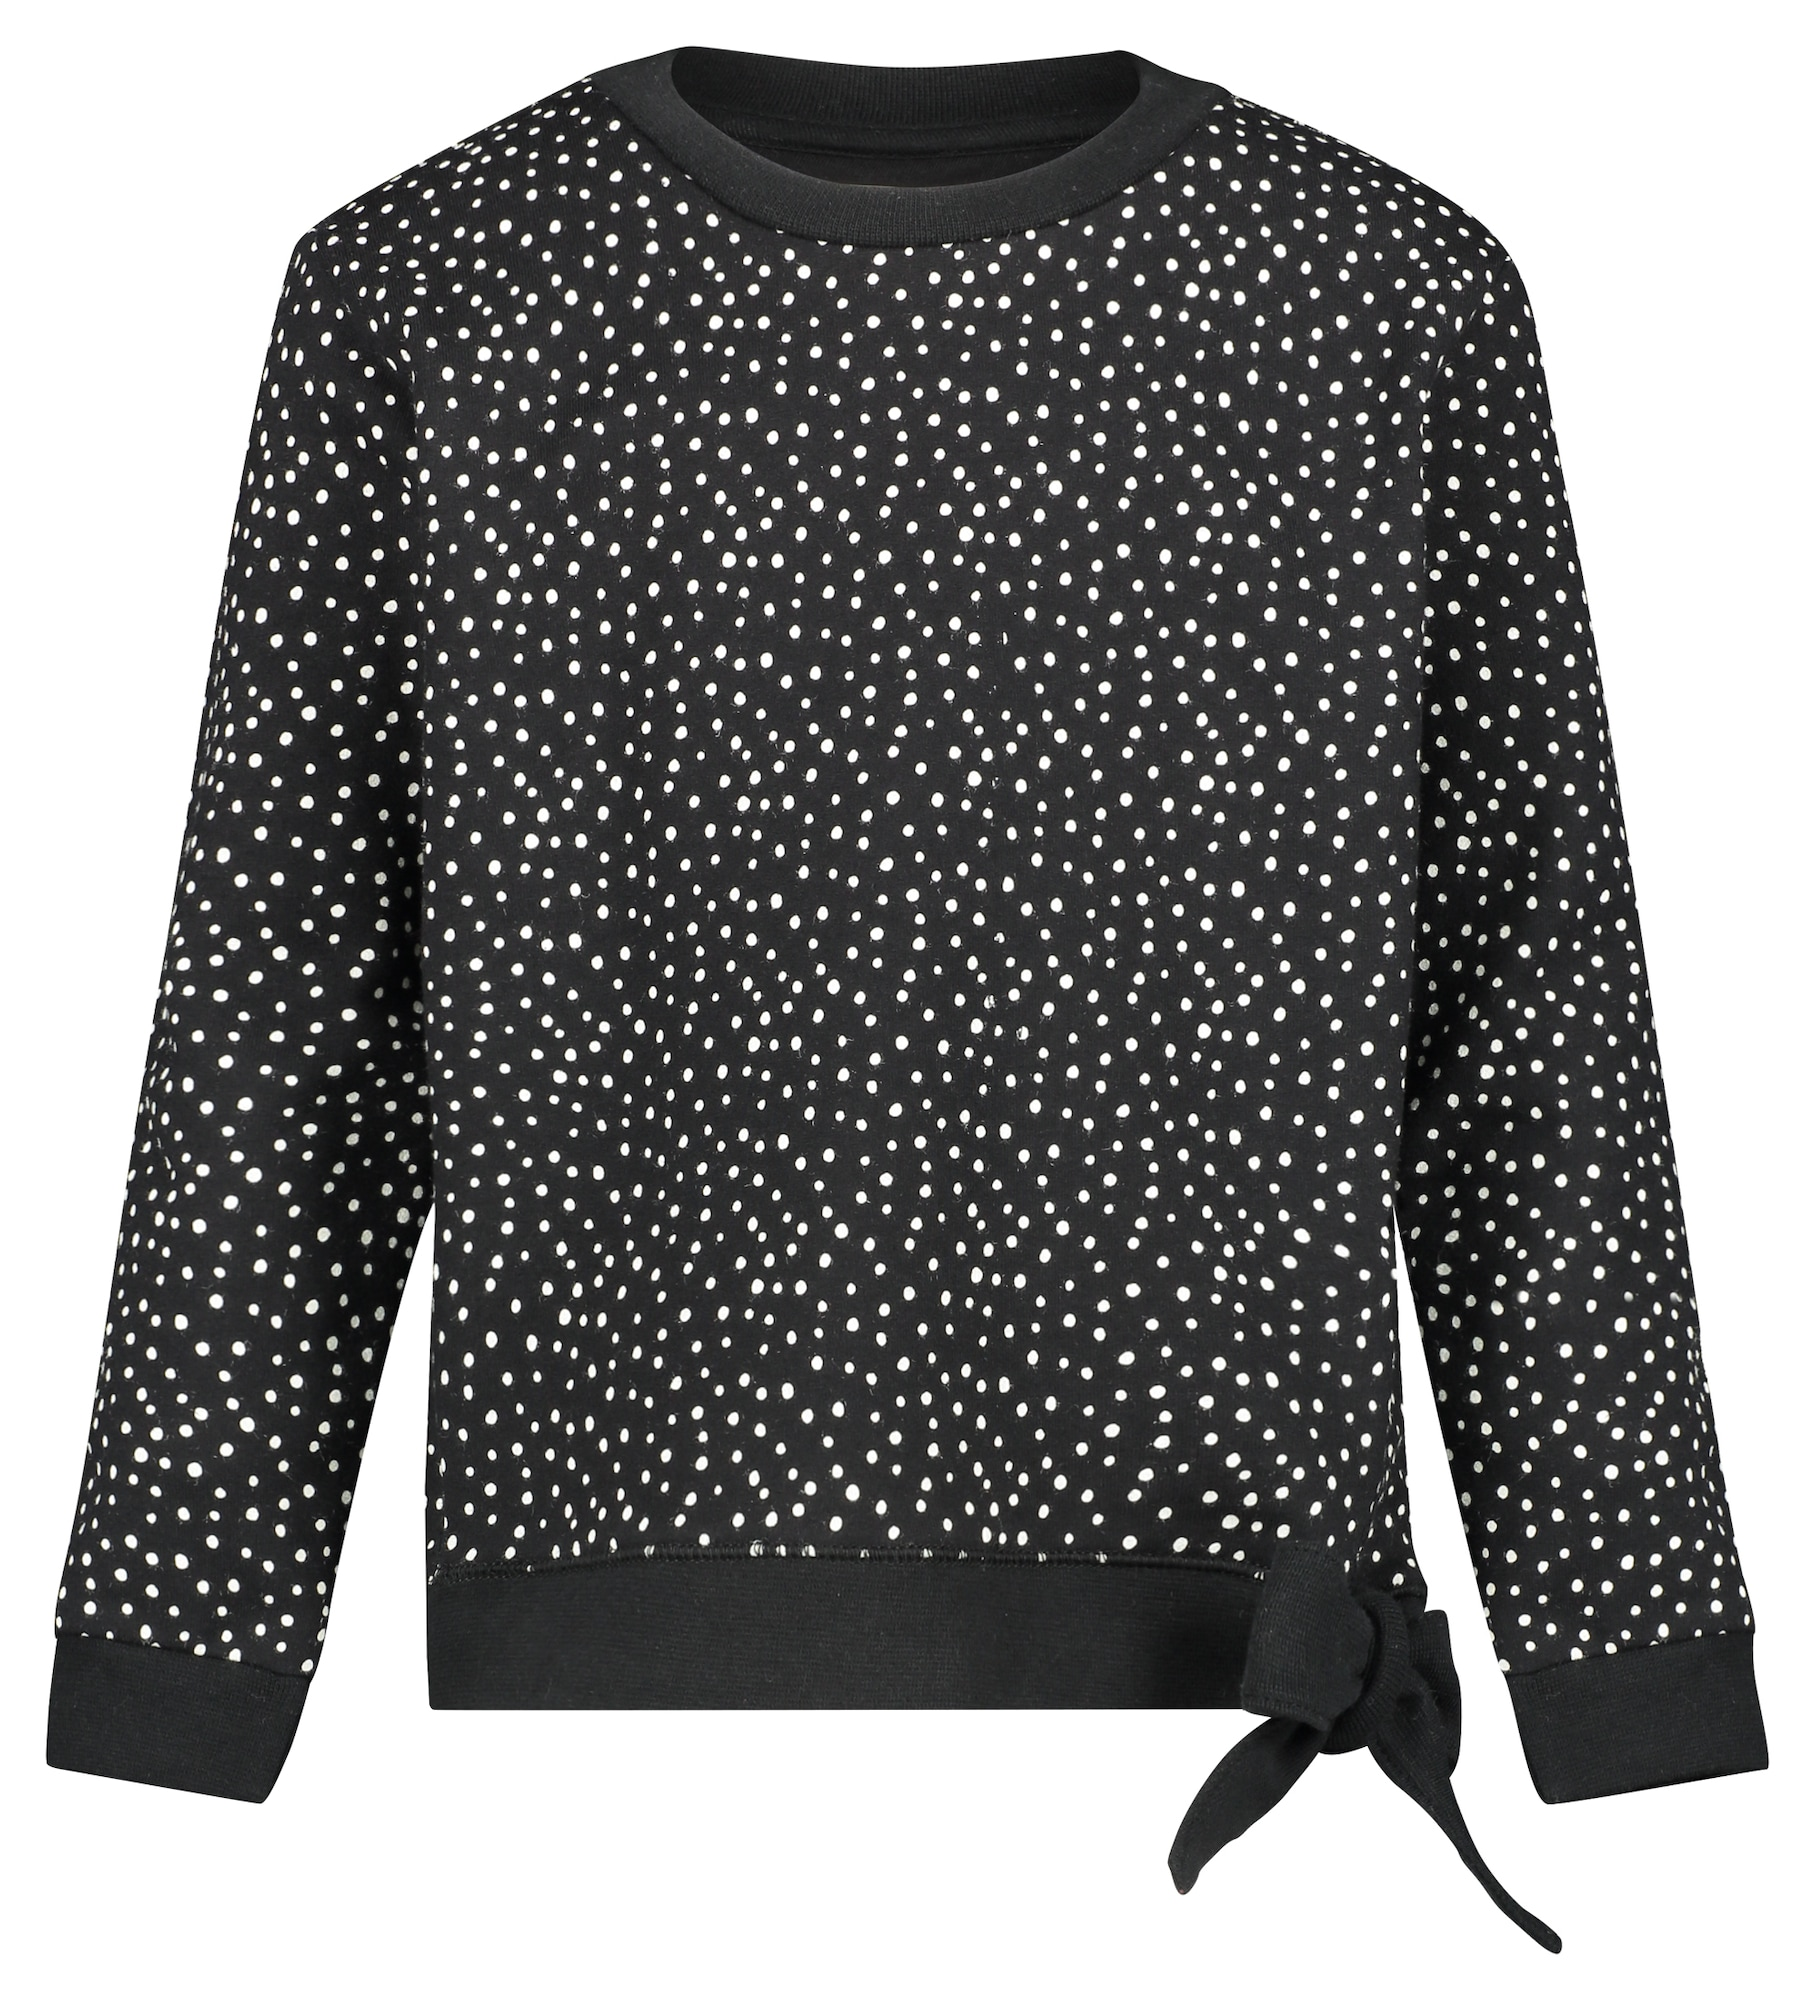 Babyoberteile - Sweater 'Conroe' - Onlineshop ABOUT YOU